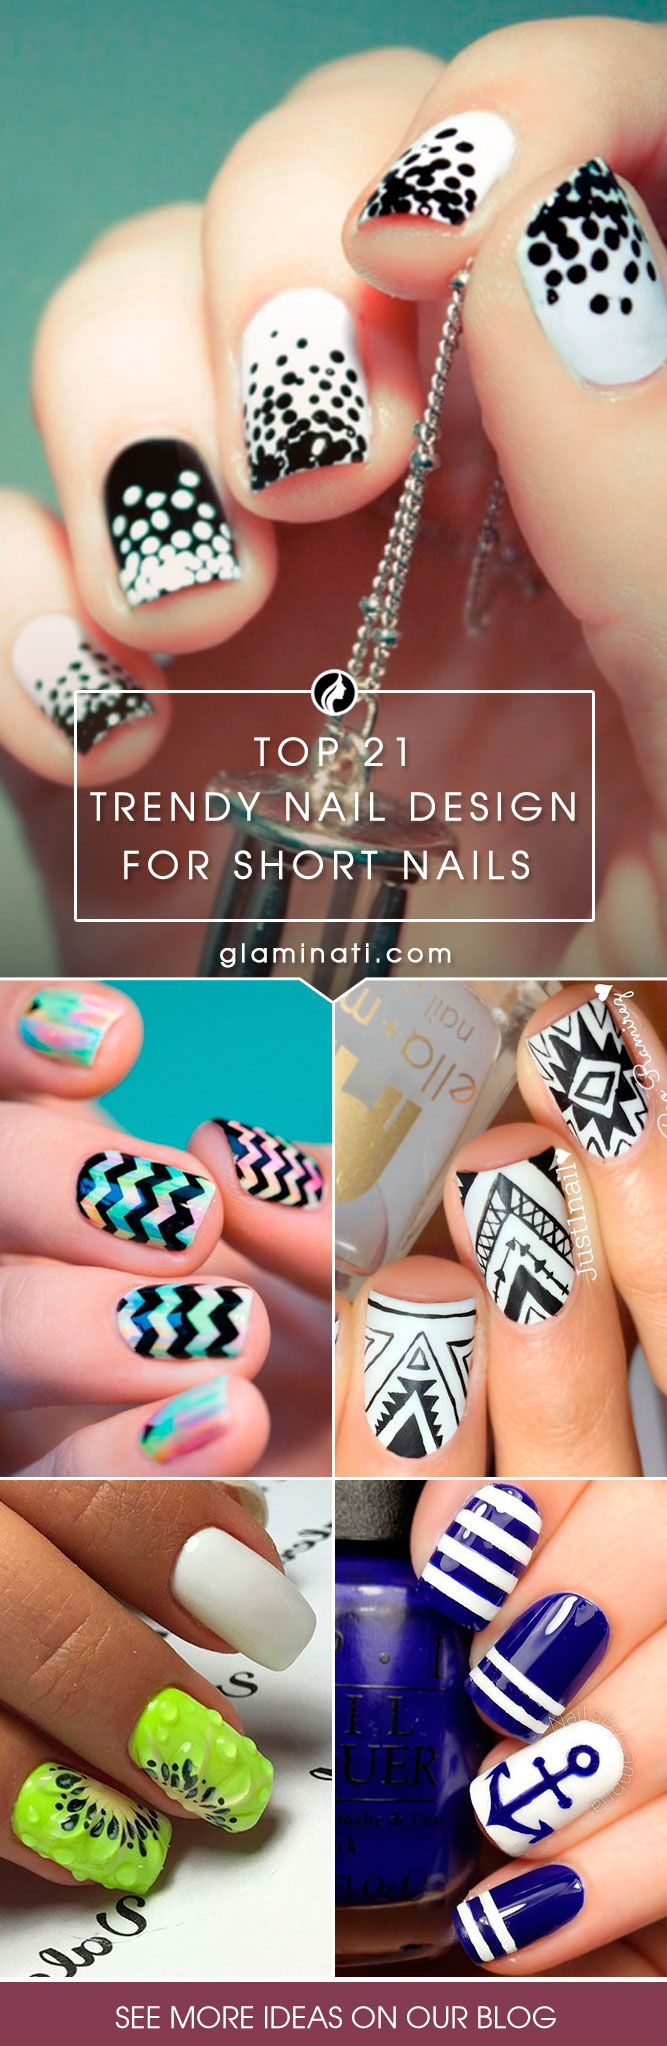 top 24 trendy nail designs for short nails | fun nails, short